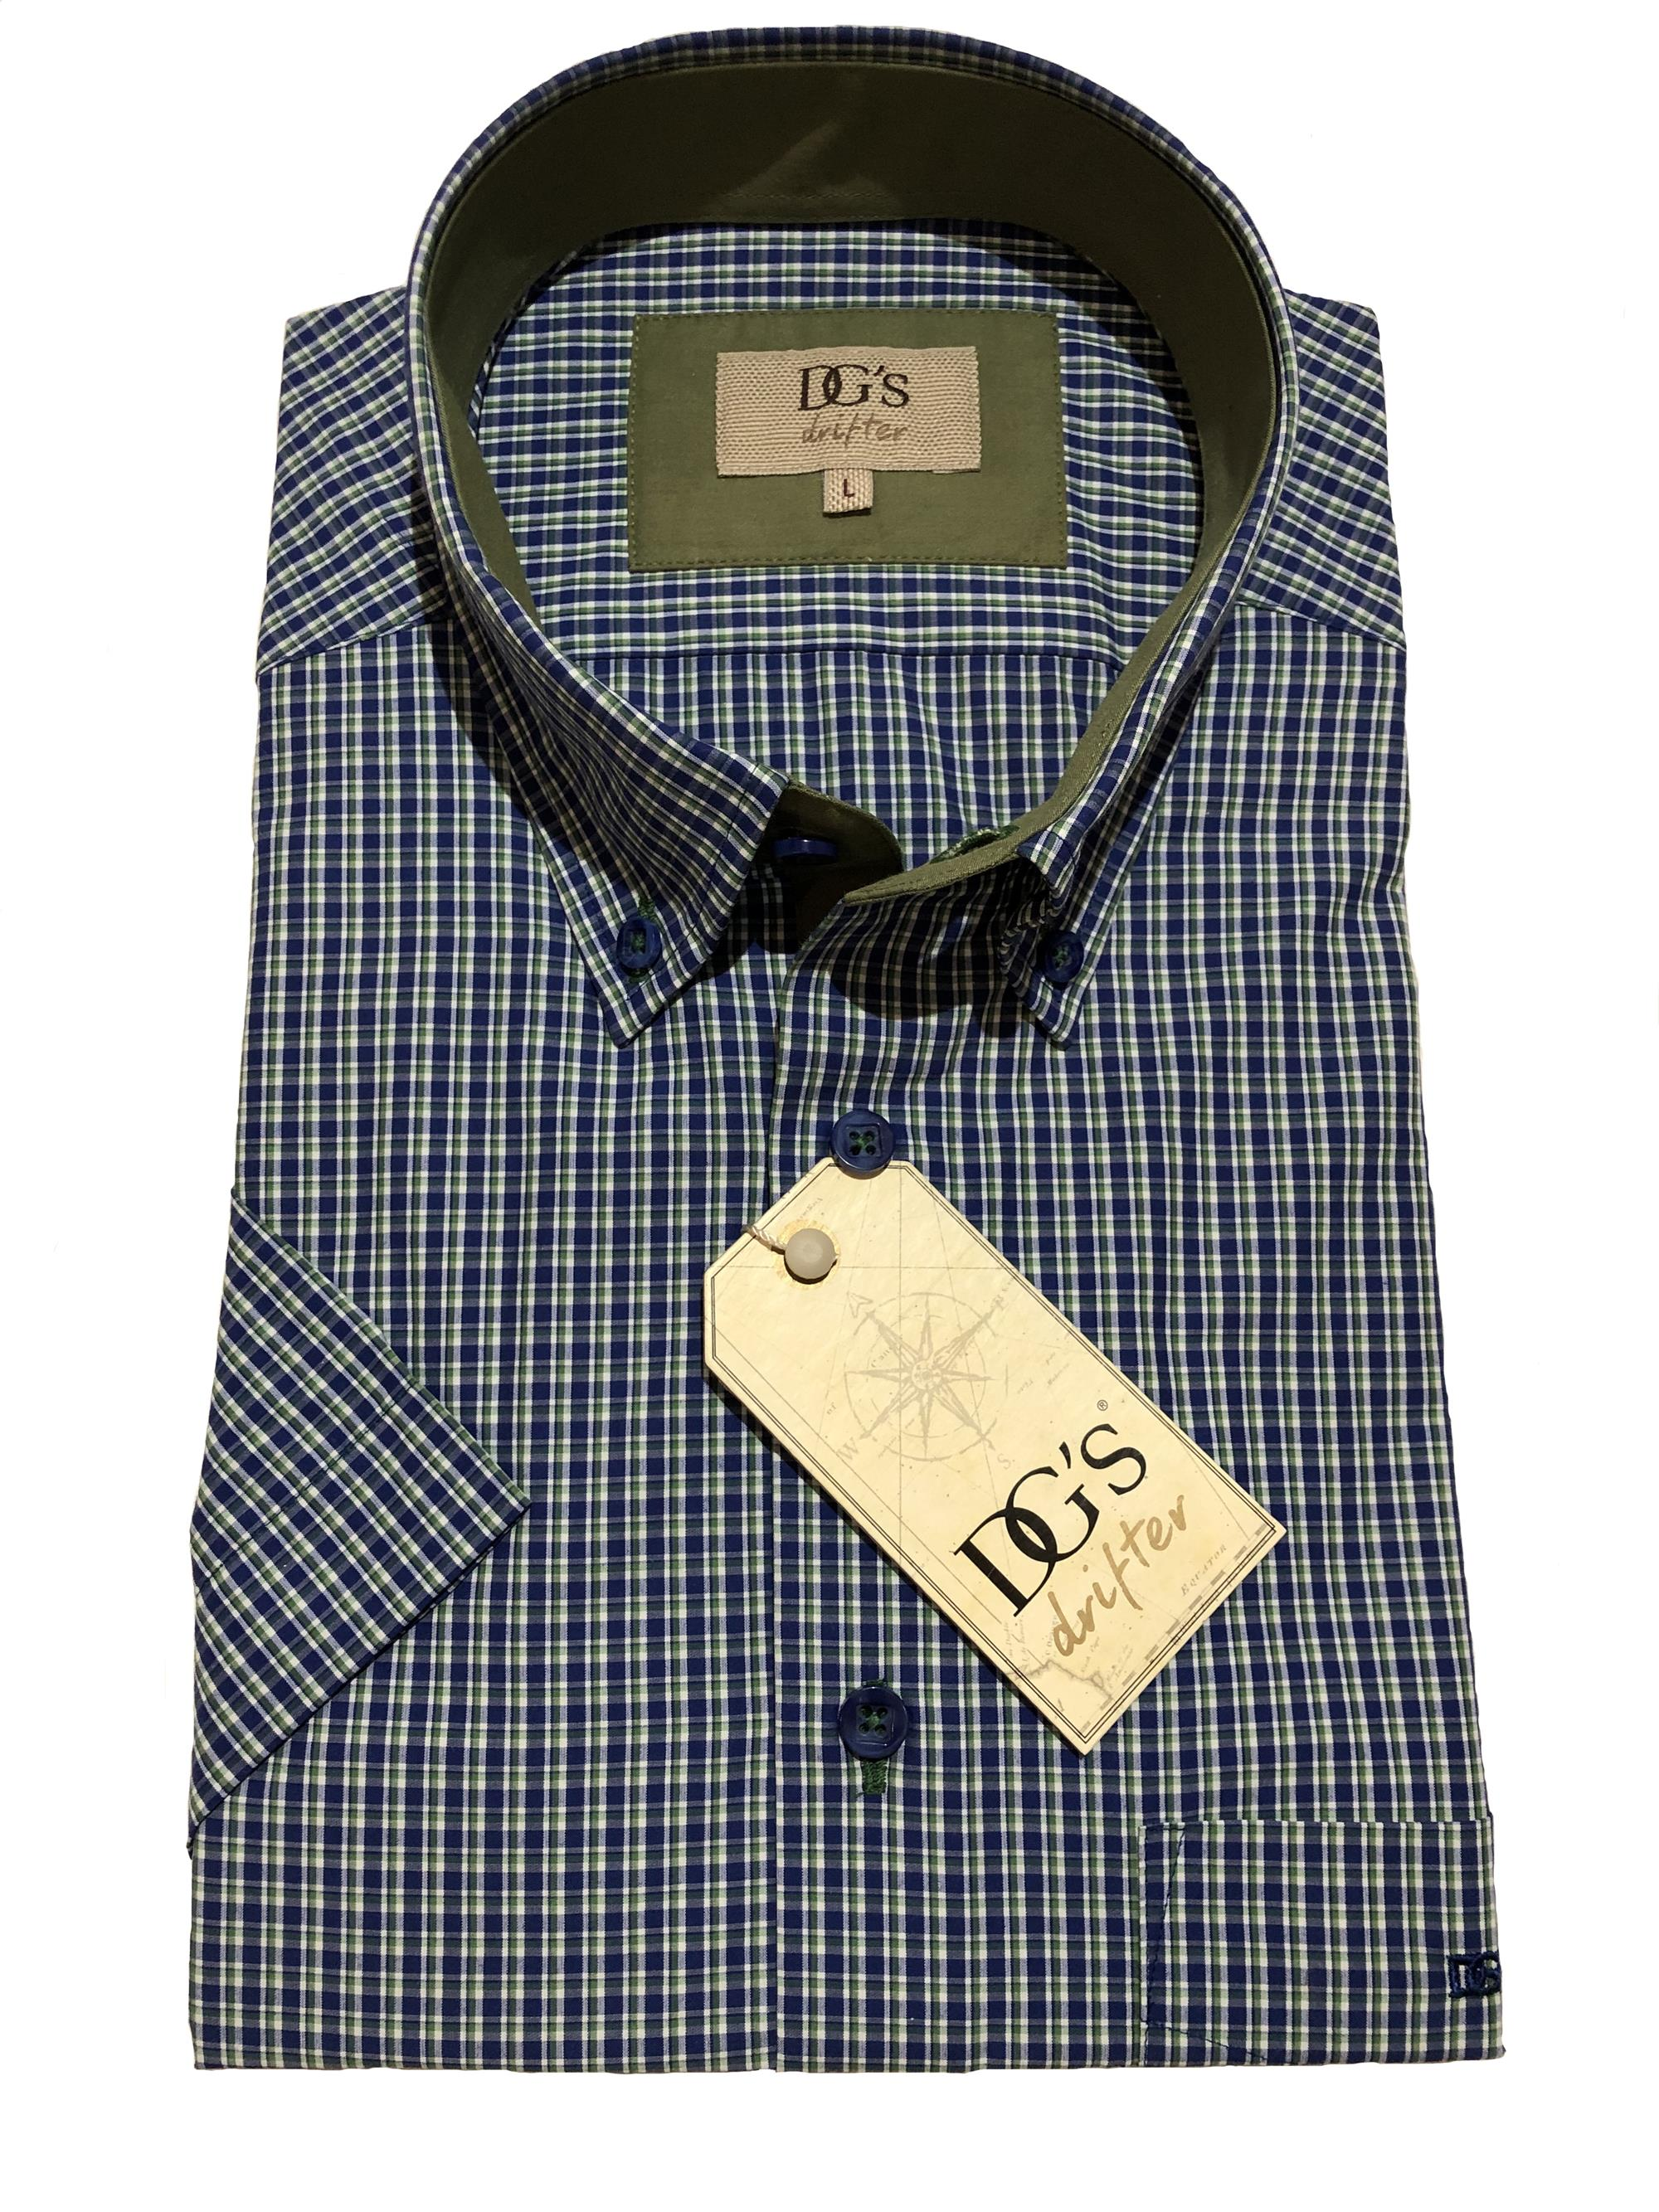 short sleeve neat check (blue/green)